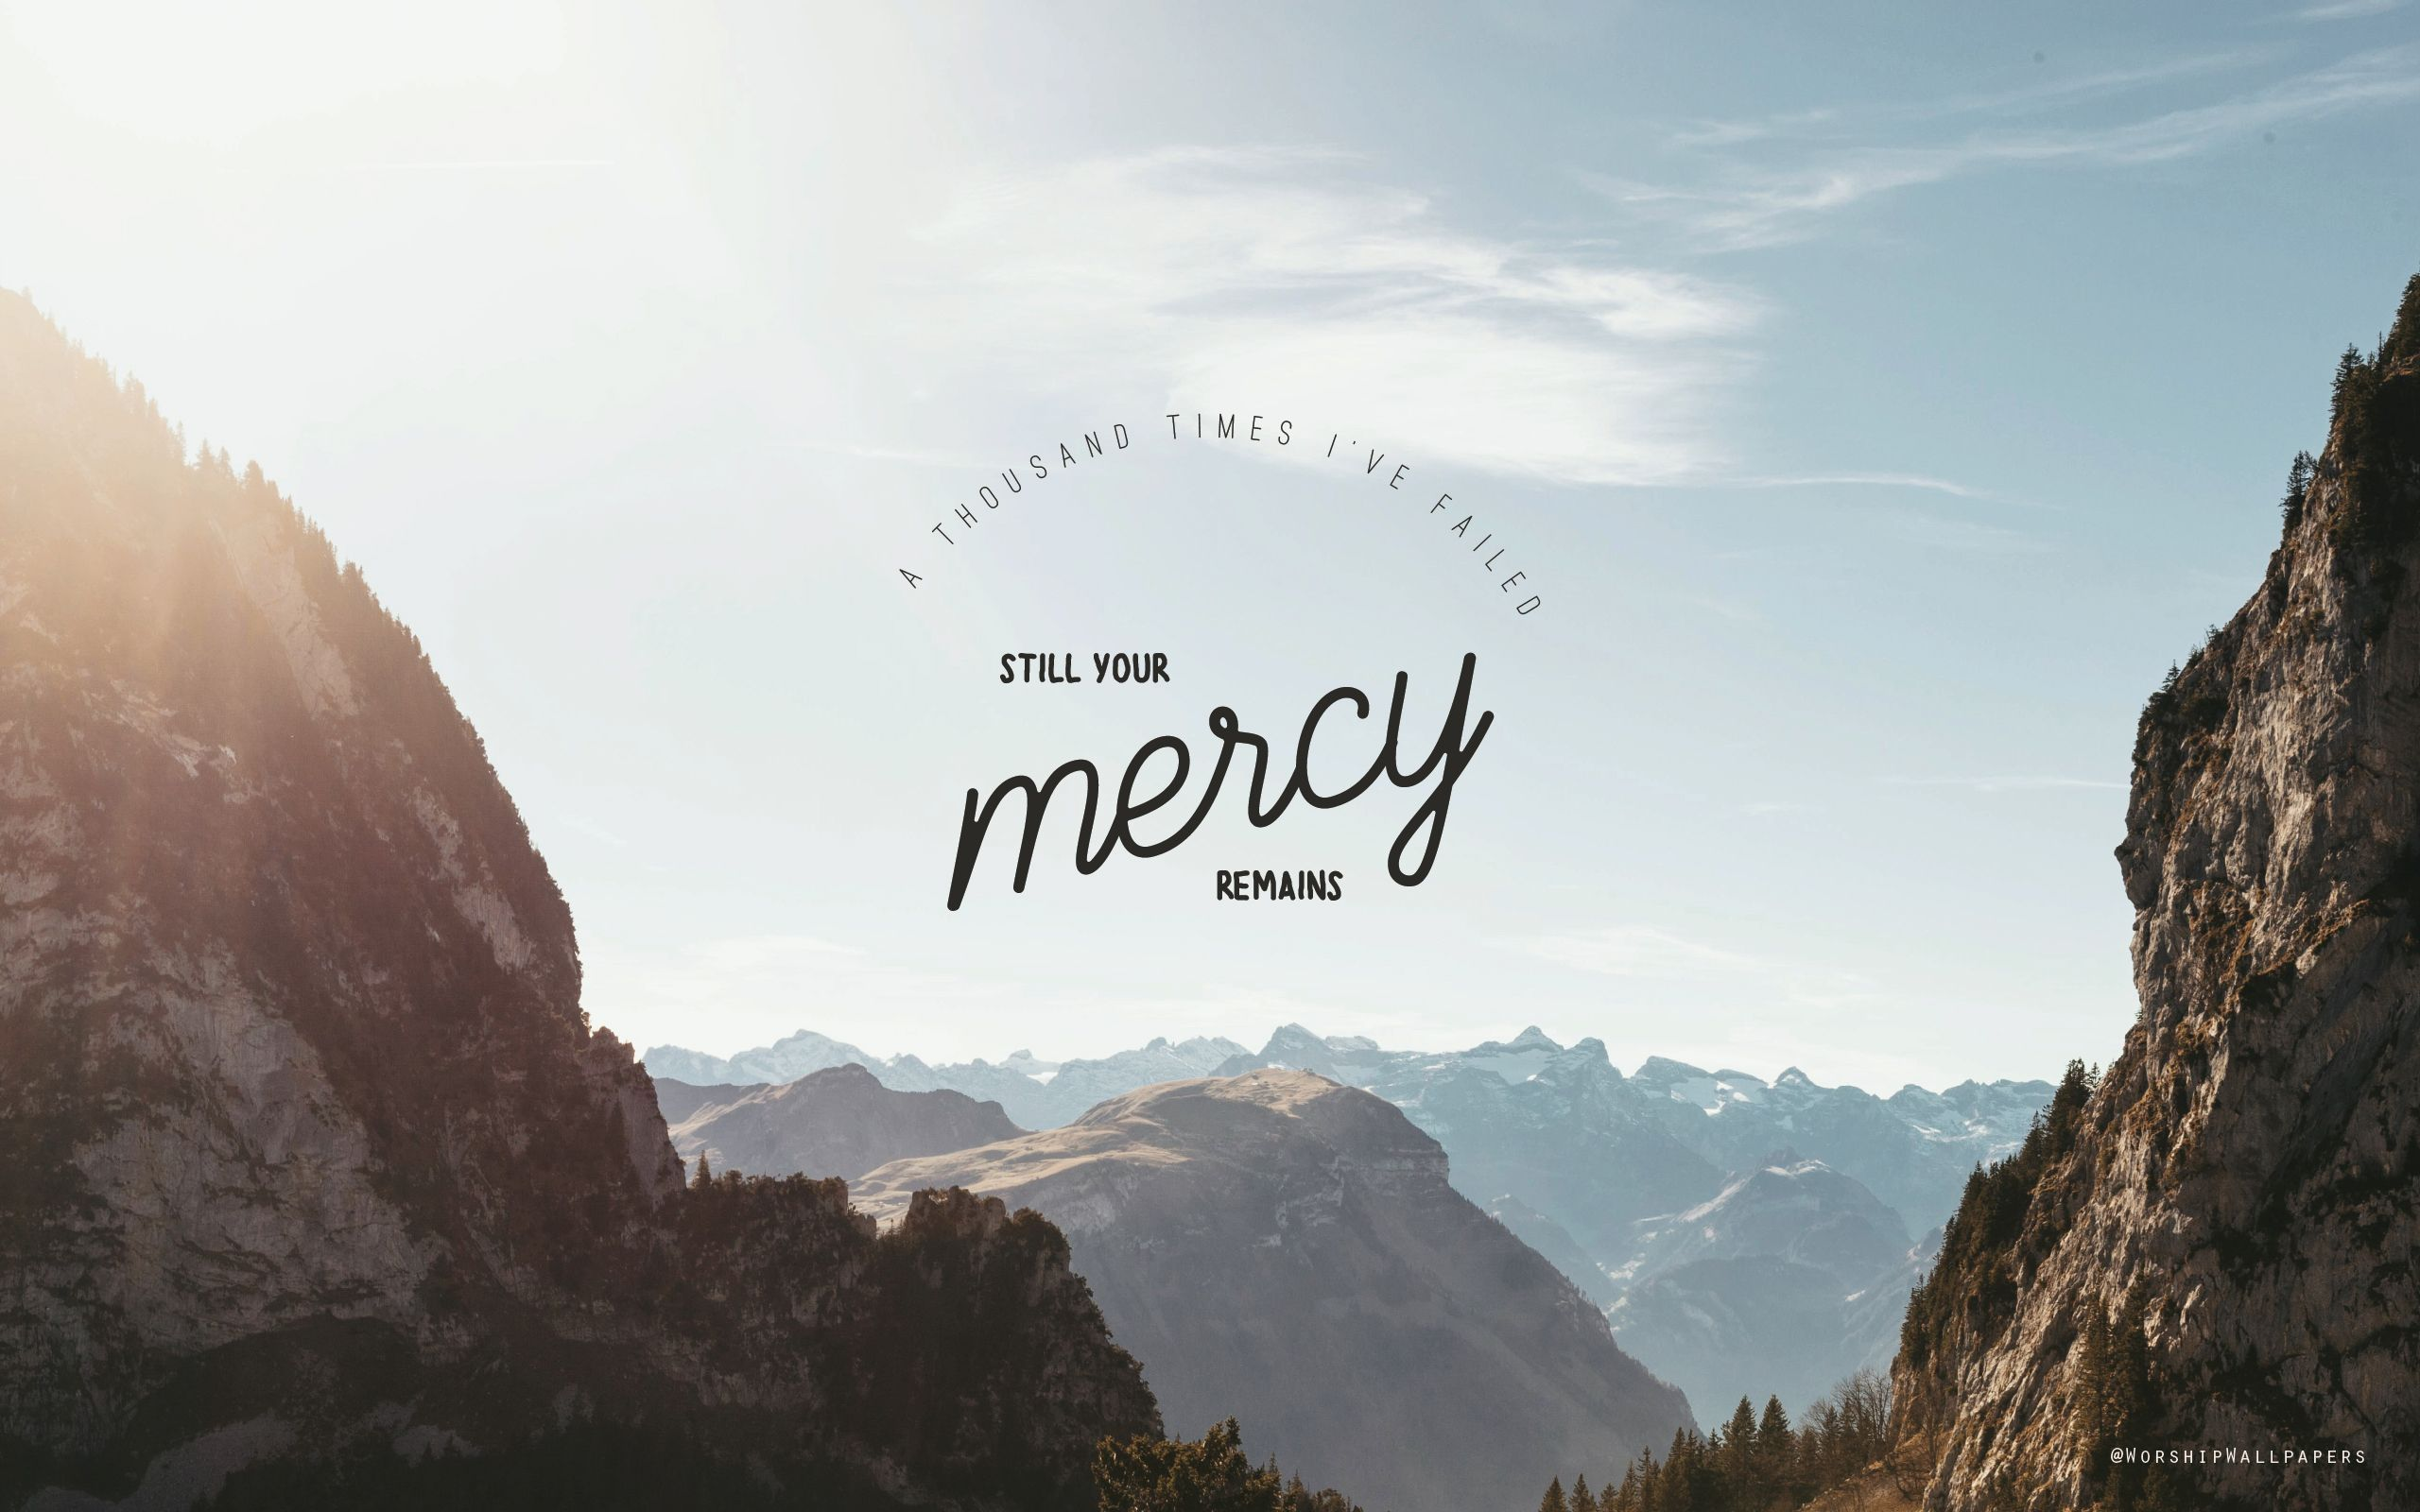 From The Inside Out By Hillsong United Laptop Wallpaper Format Like Us On Fa Laptop Wallpaper Quotes Laptop Wallpaper Desktop Wallpapers Laptop Wallpaper